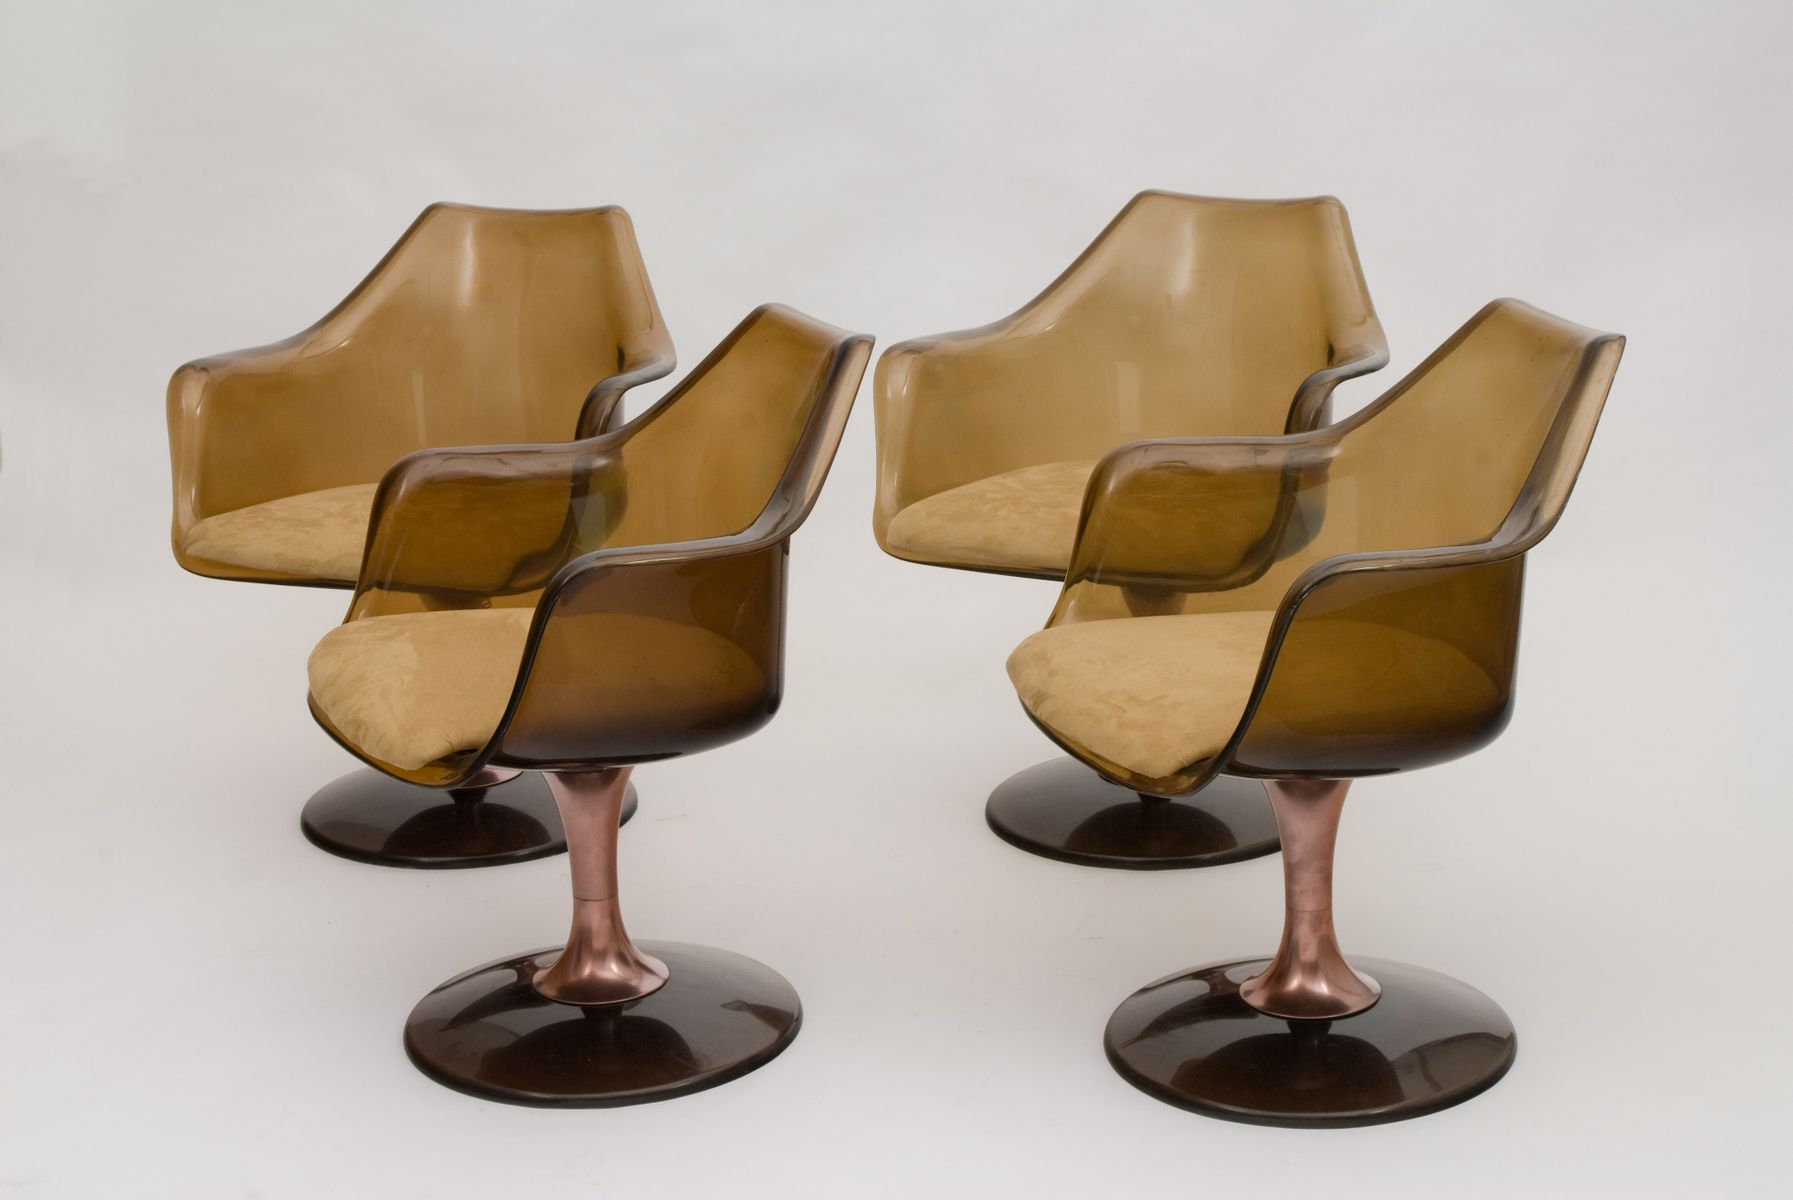 chromcraft chairs vintage wobble chair canada american swivel from set of 4